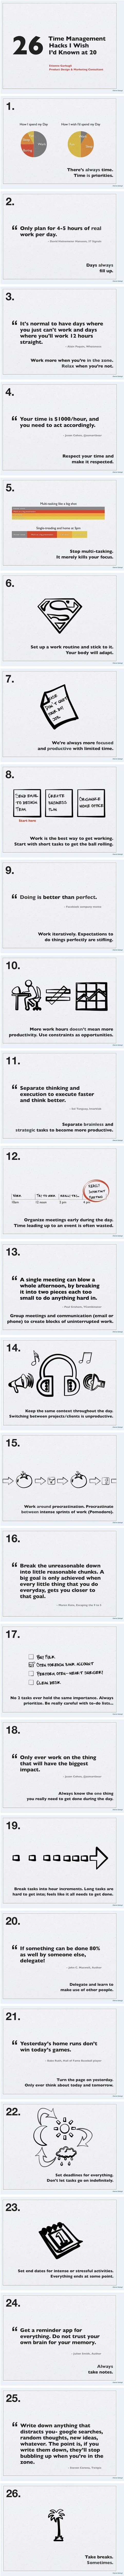 26 Time Management And Productivity Hacks